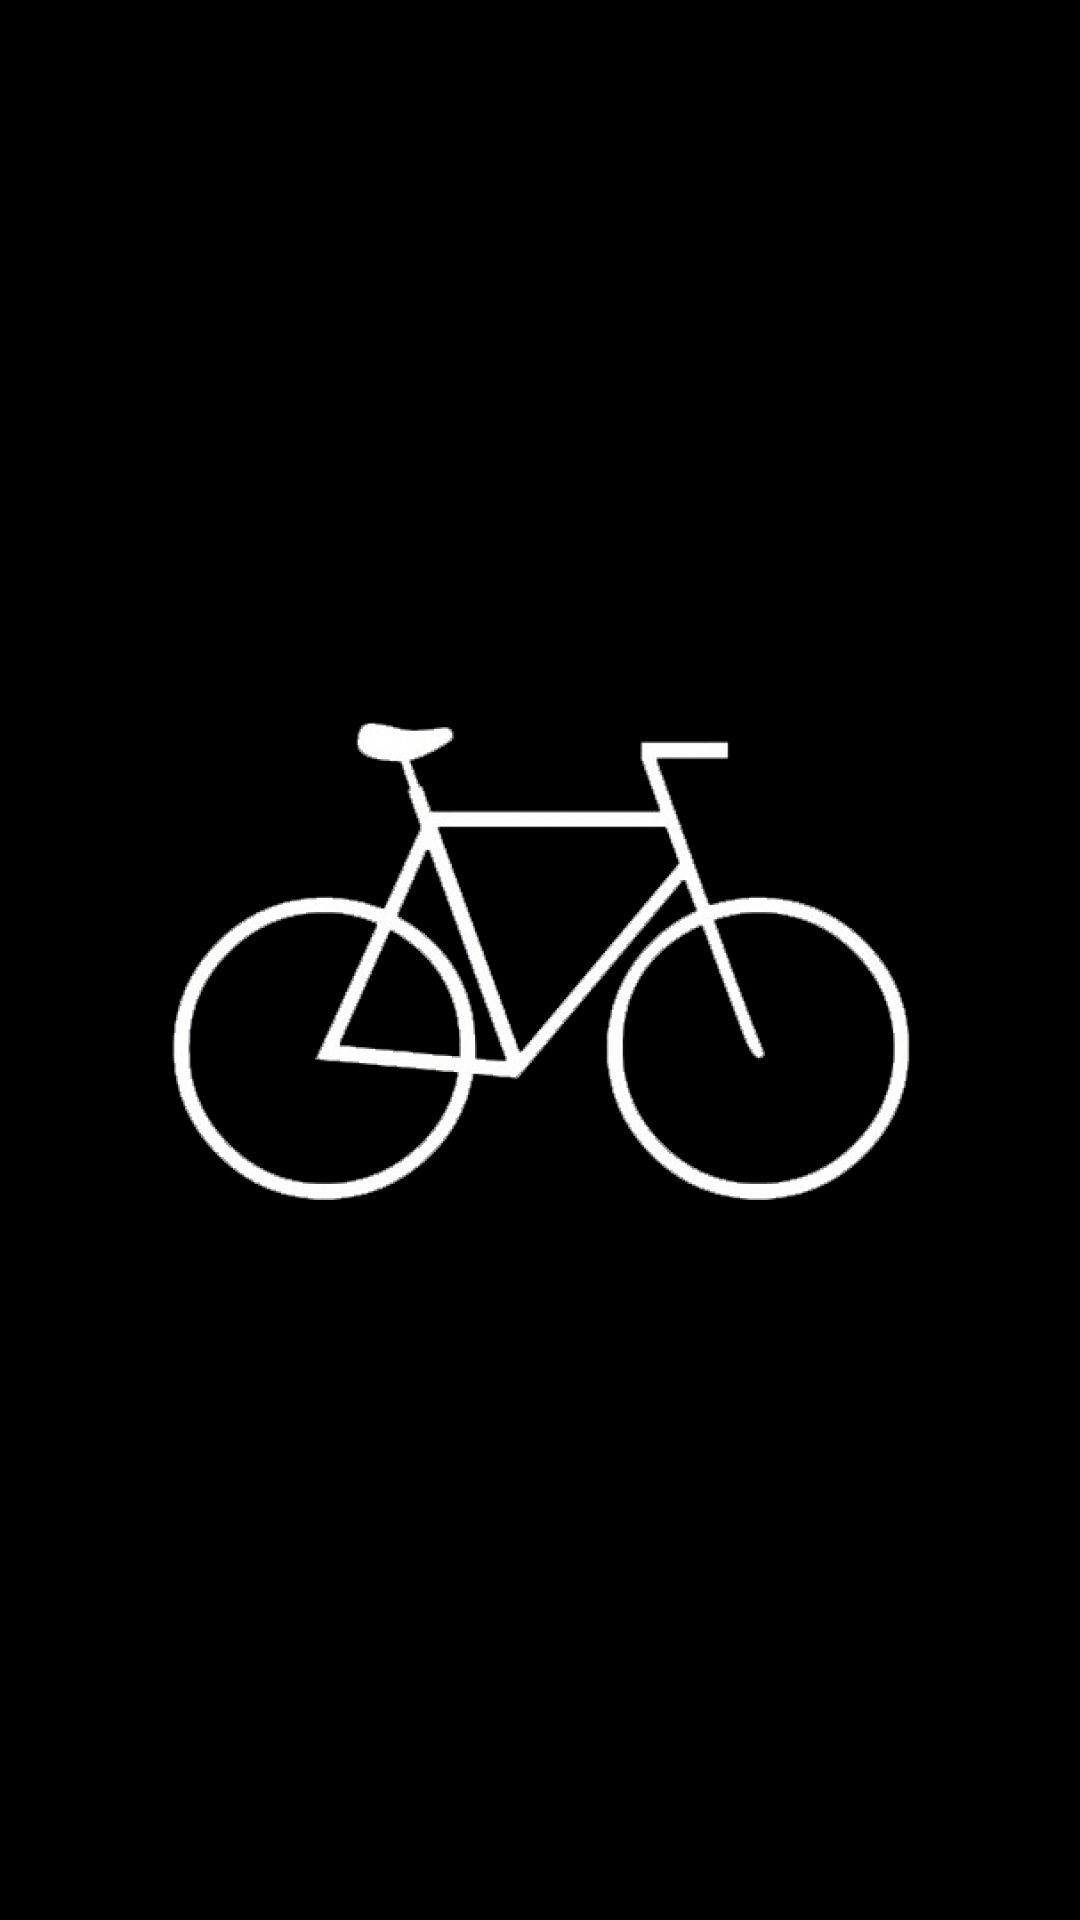 Flat Simple Bicycle Hipster